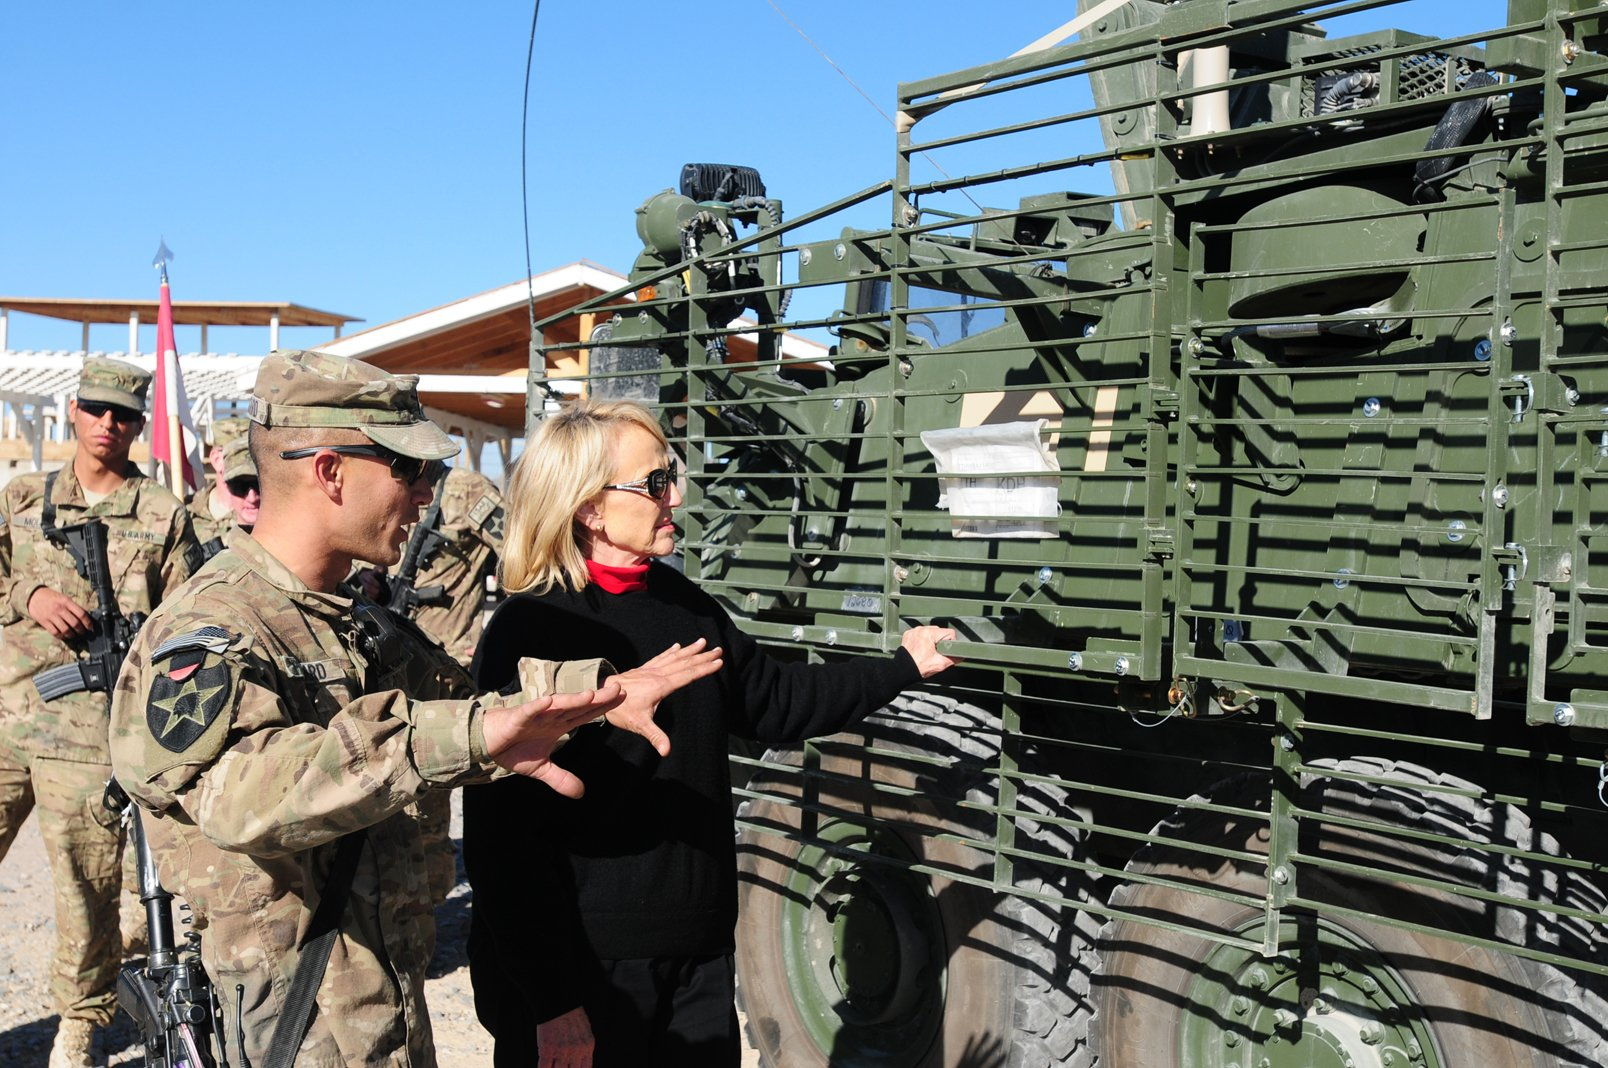 Sgt. 1st Class Jason Packard, assigned to 8th Squadron, 1st Cavalry Regiment , 2nd Stryker Brigade Combat Team, 2nd Infantry Division and attached to Task Force Steel at FOB Frontenac, explains some of the capabilities of the Stryker vehicle to AZ. Gov.